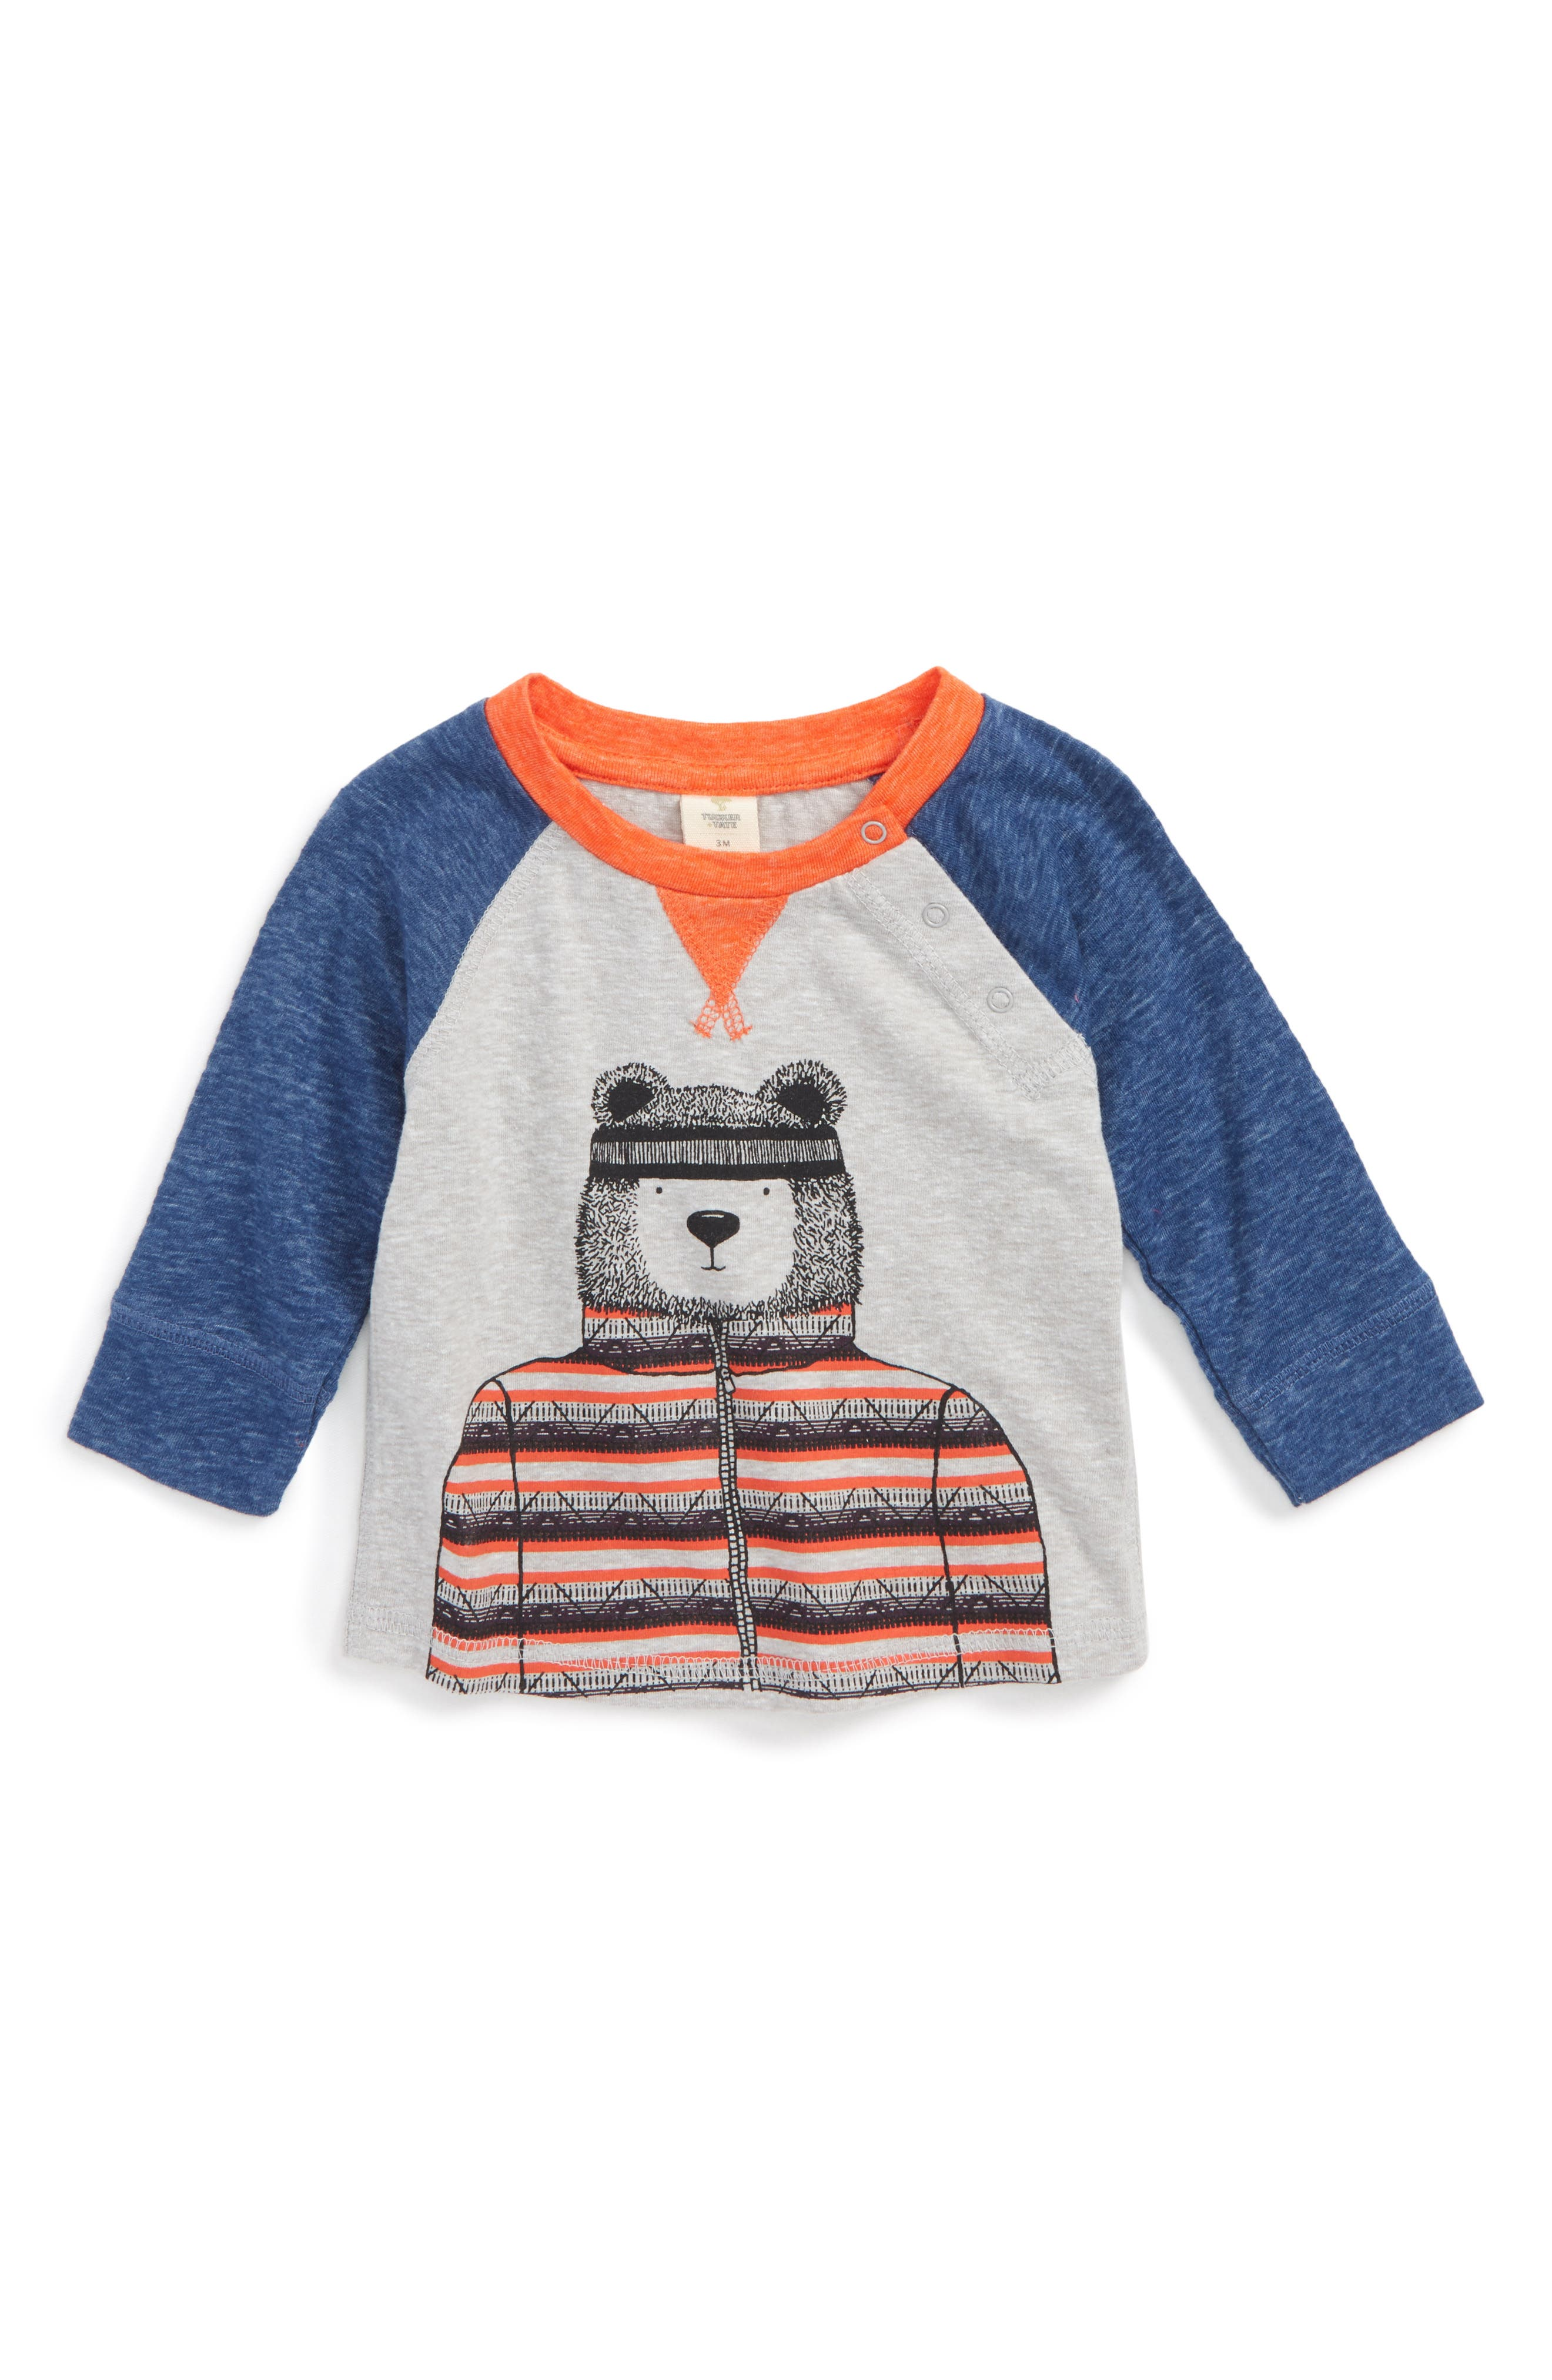 Alternate Image 1 Selected - Tucker + Tate Flyaway Graphic T-Shirt (Baby Boys)